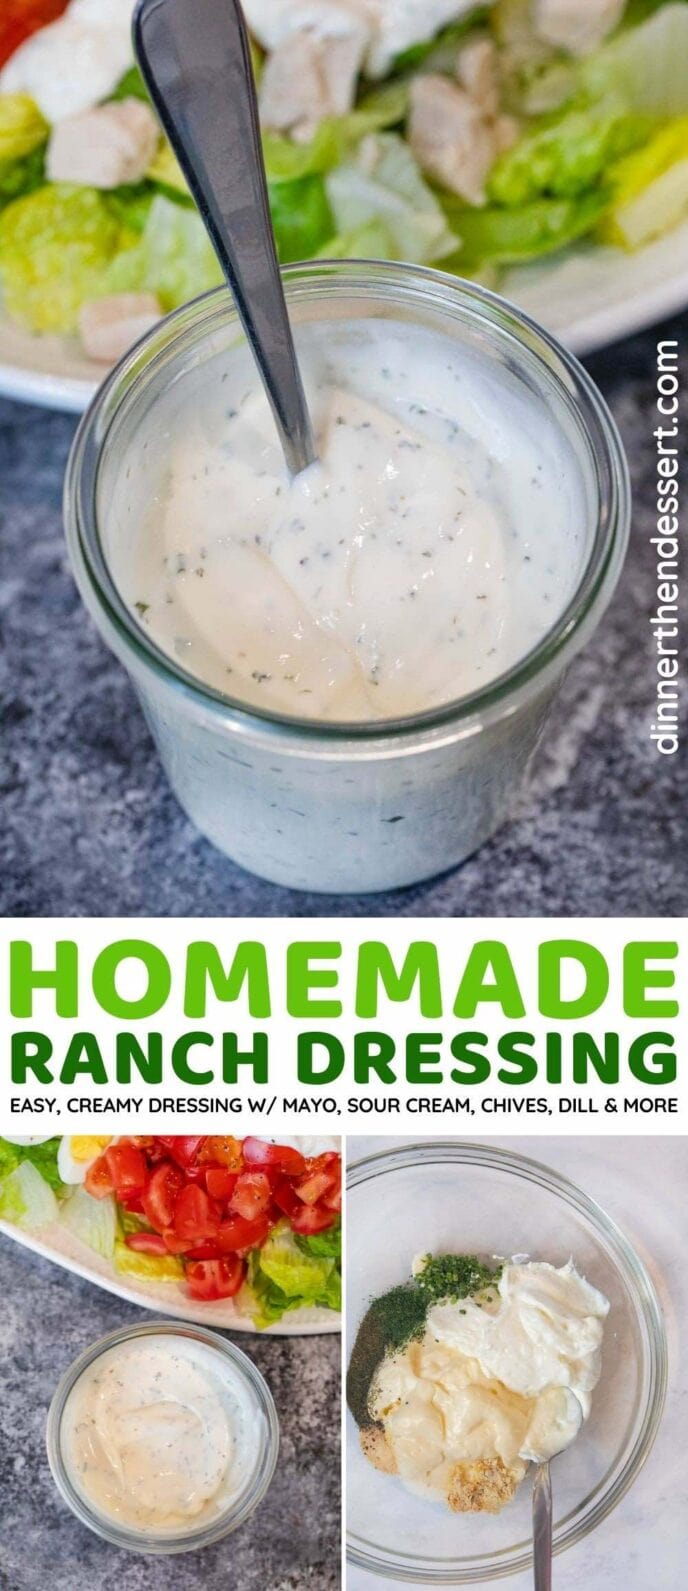 Homemade Ranch Dressing collage